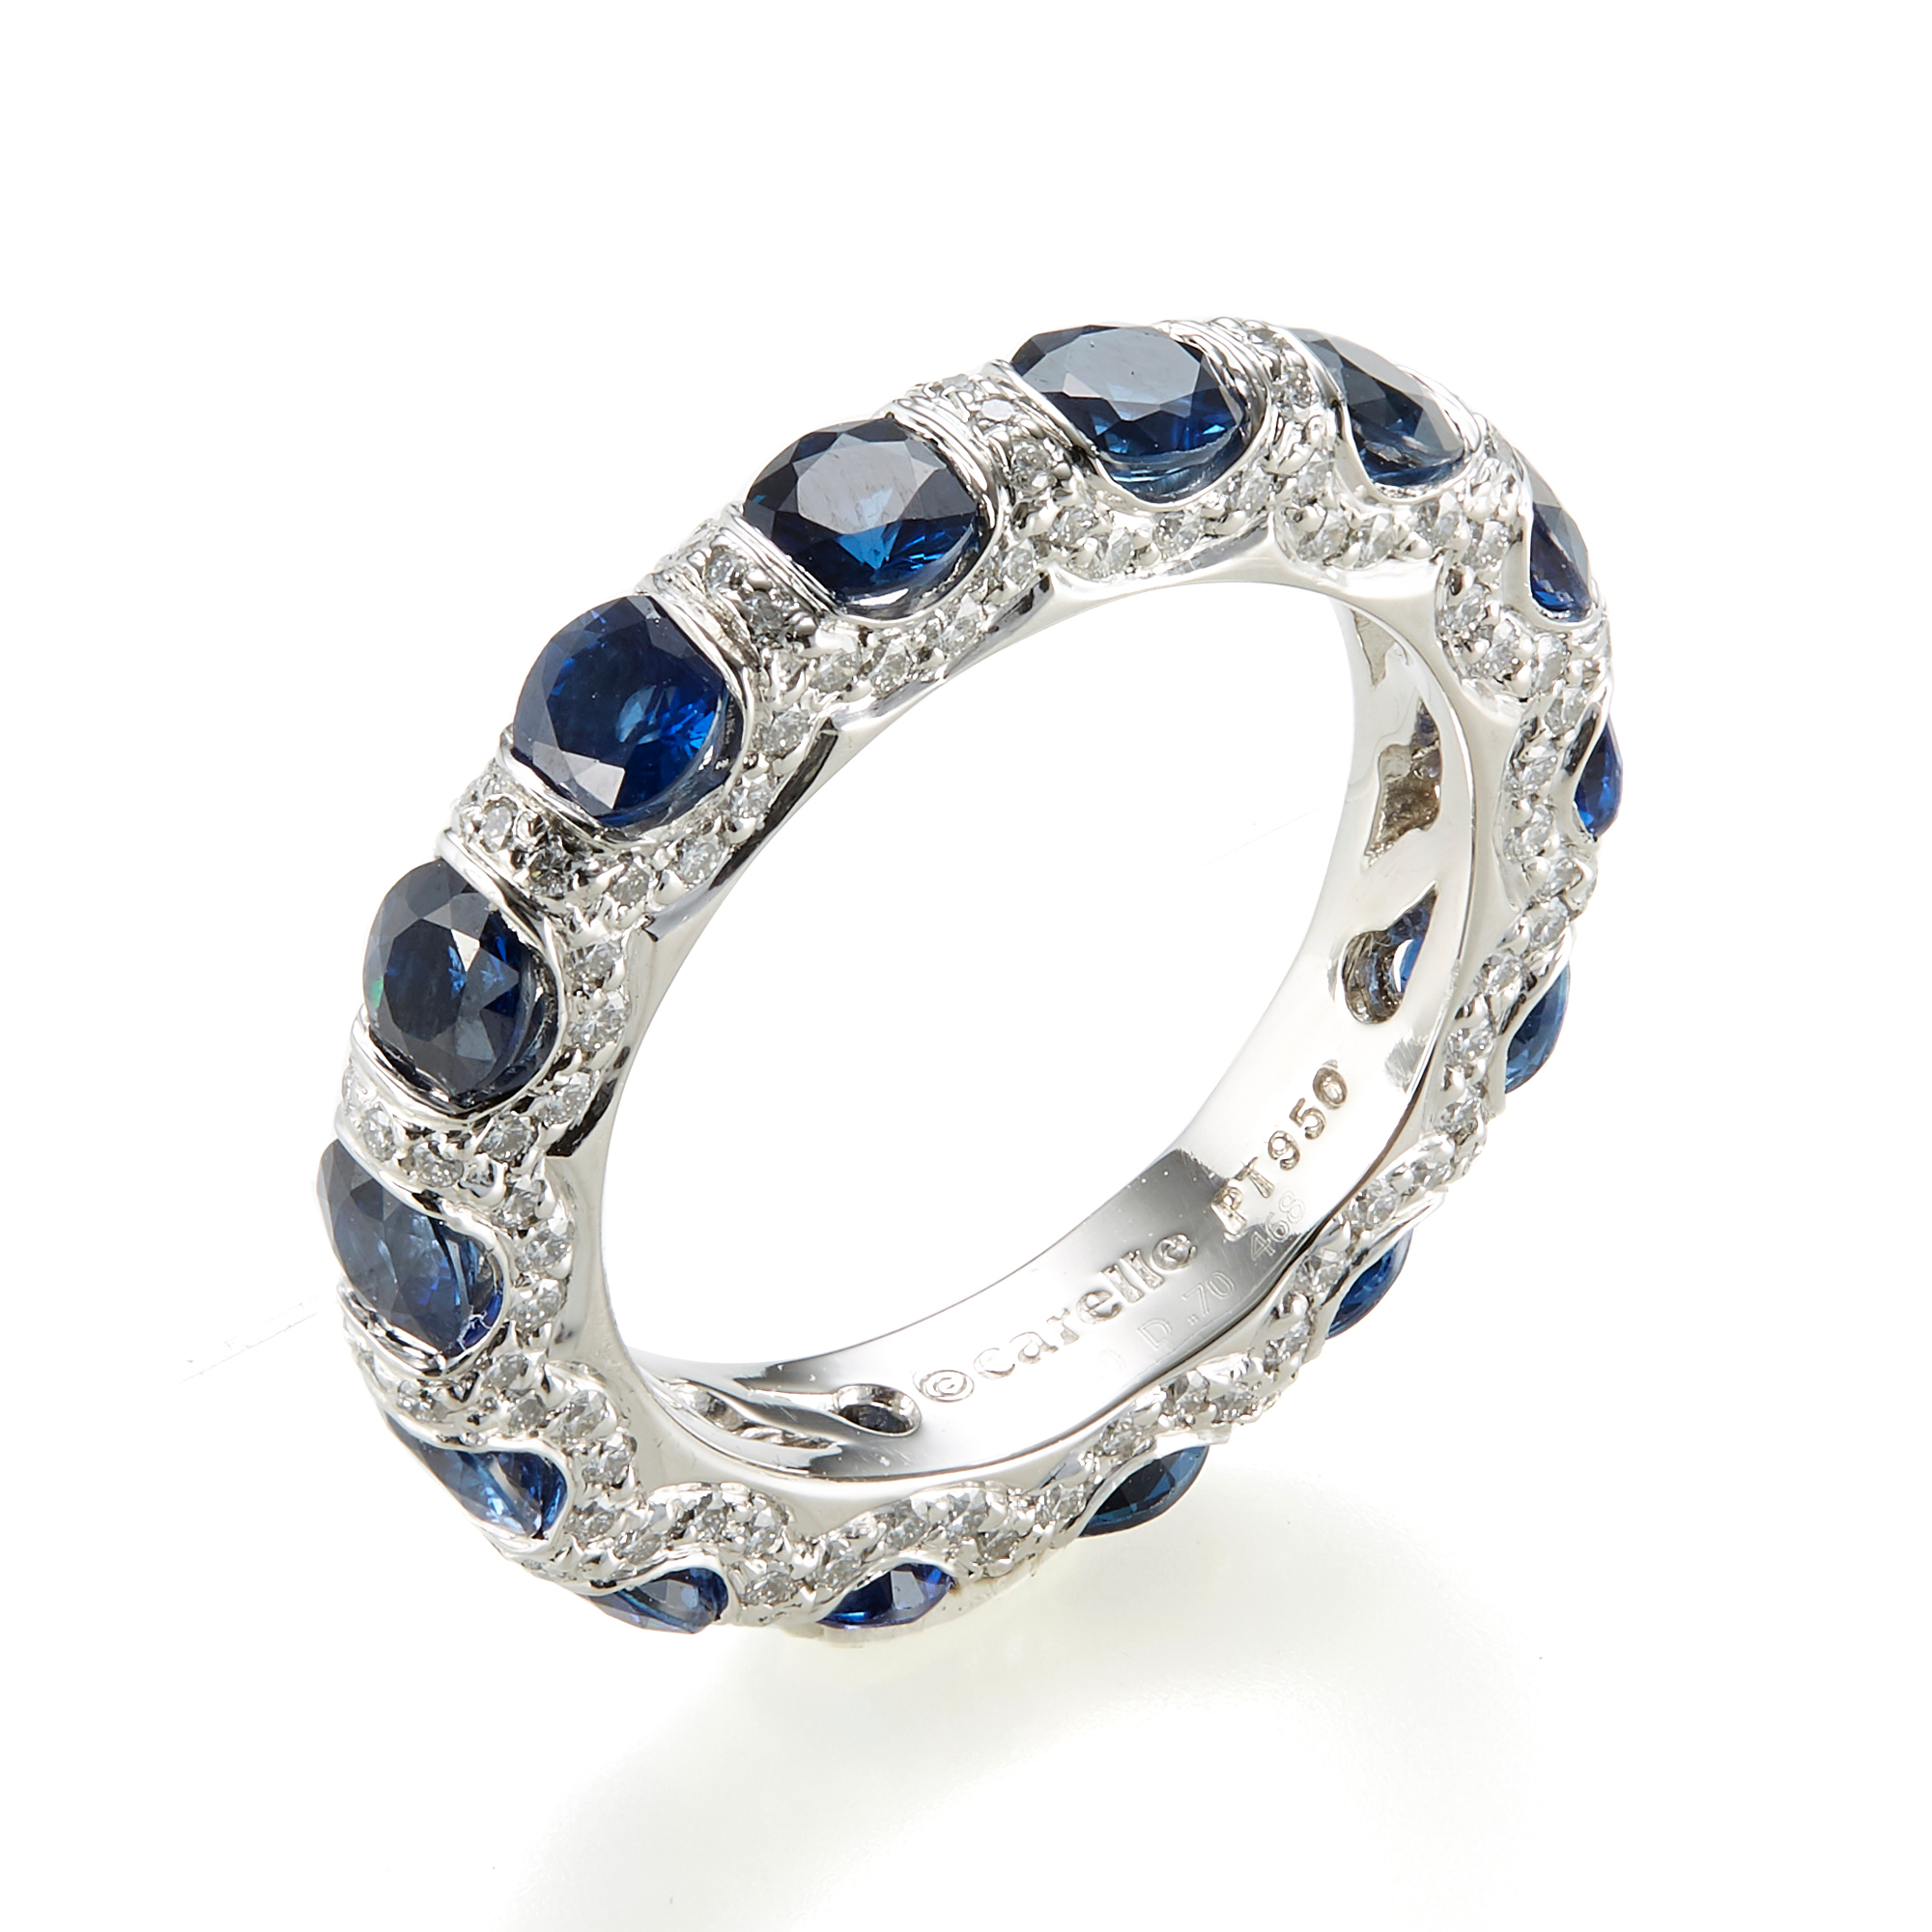 Carelle Diamond & Sapphire Carizma Eternity Band Ring